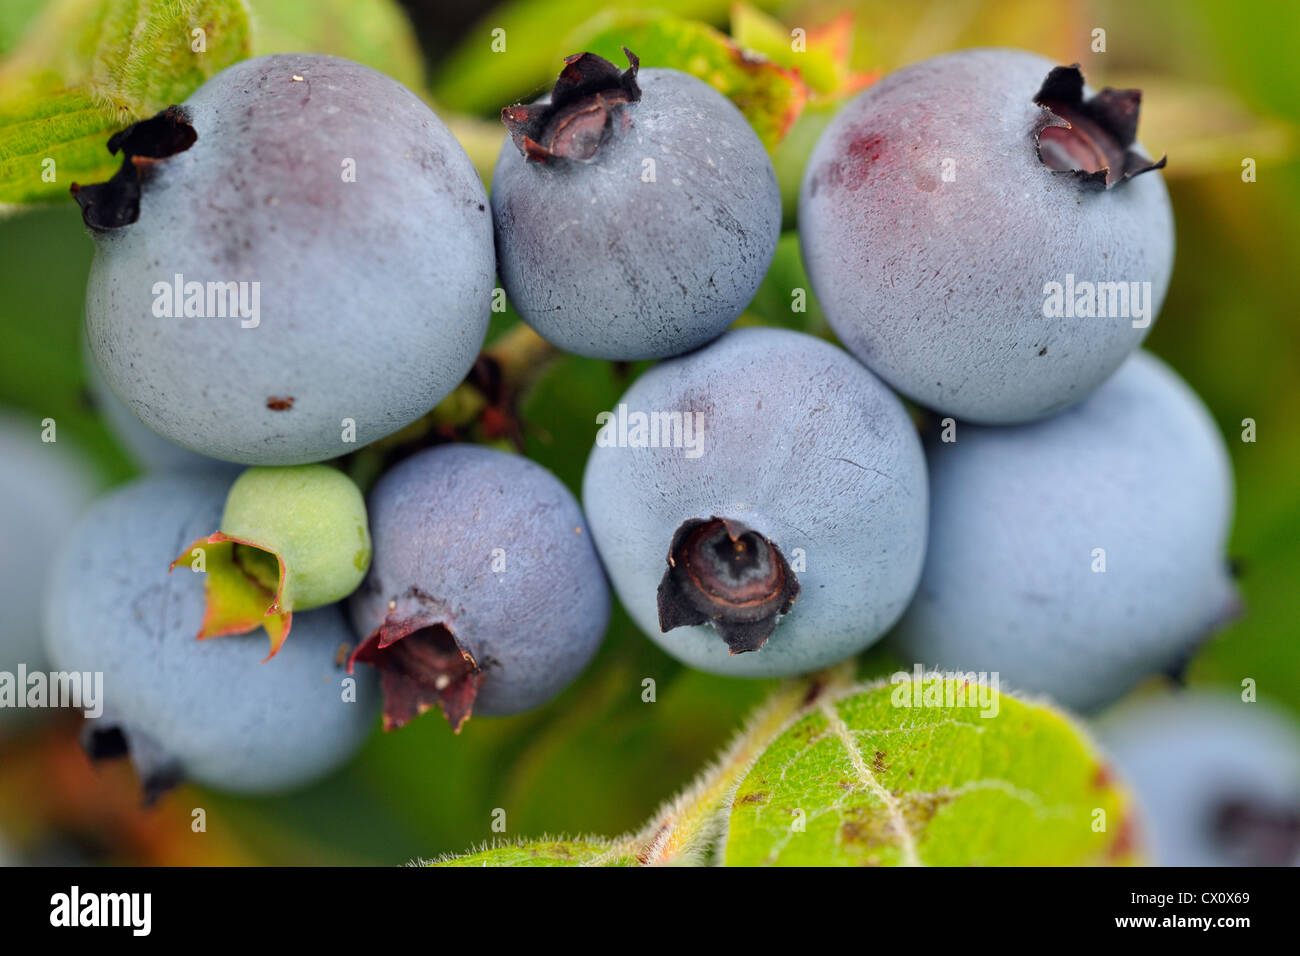 Lowbush blueberry (Vaccinium augustifolium) Ripe berries in a bumper crop, Greater Sudbury, Ontario, Canada - Stock Image